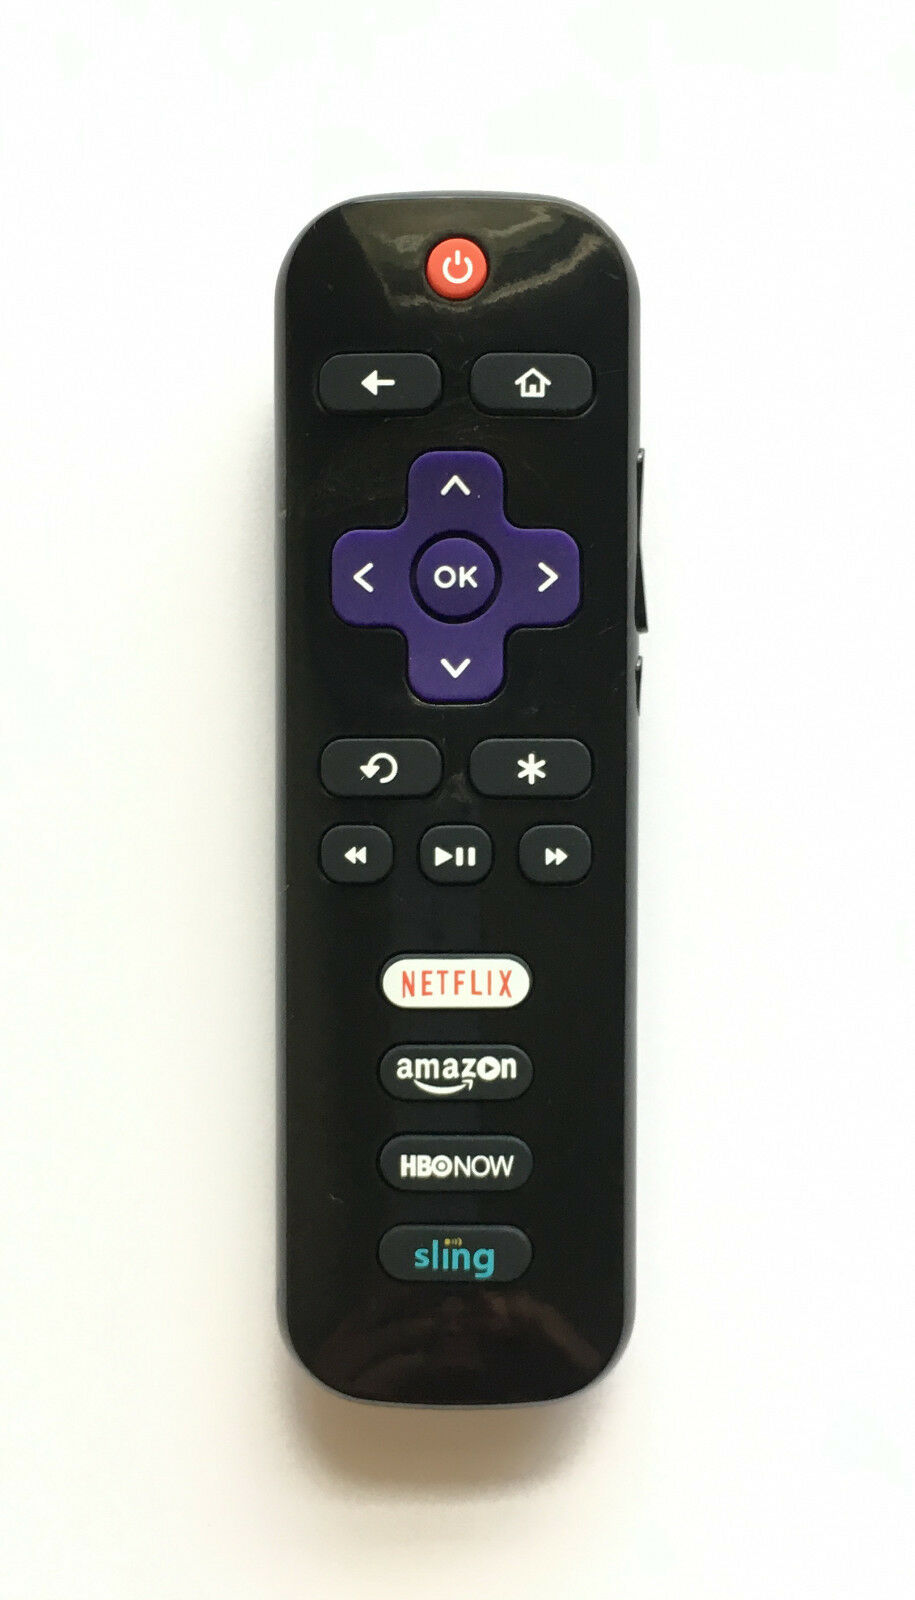 Купить For TCL Roku TV - New RC280 LED HDTV Remote for TCL ROKU TV with HBONOW Sling Netflix Amazon